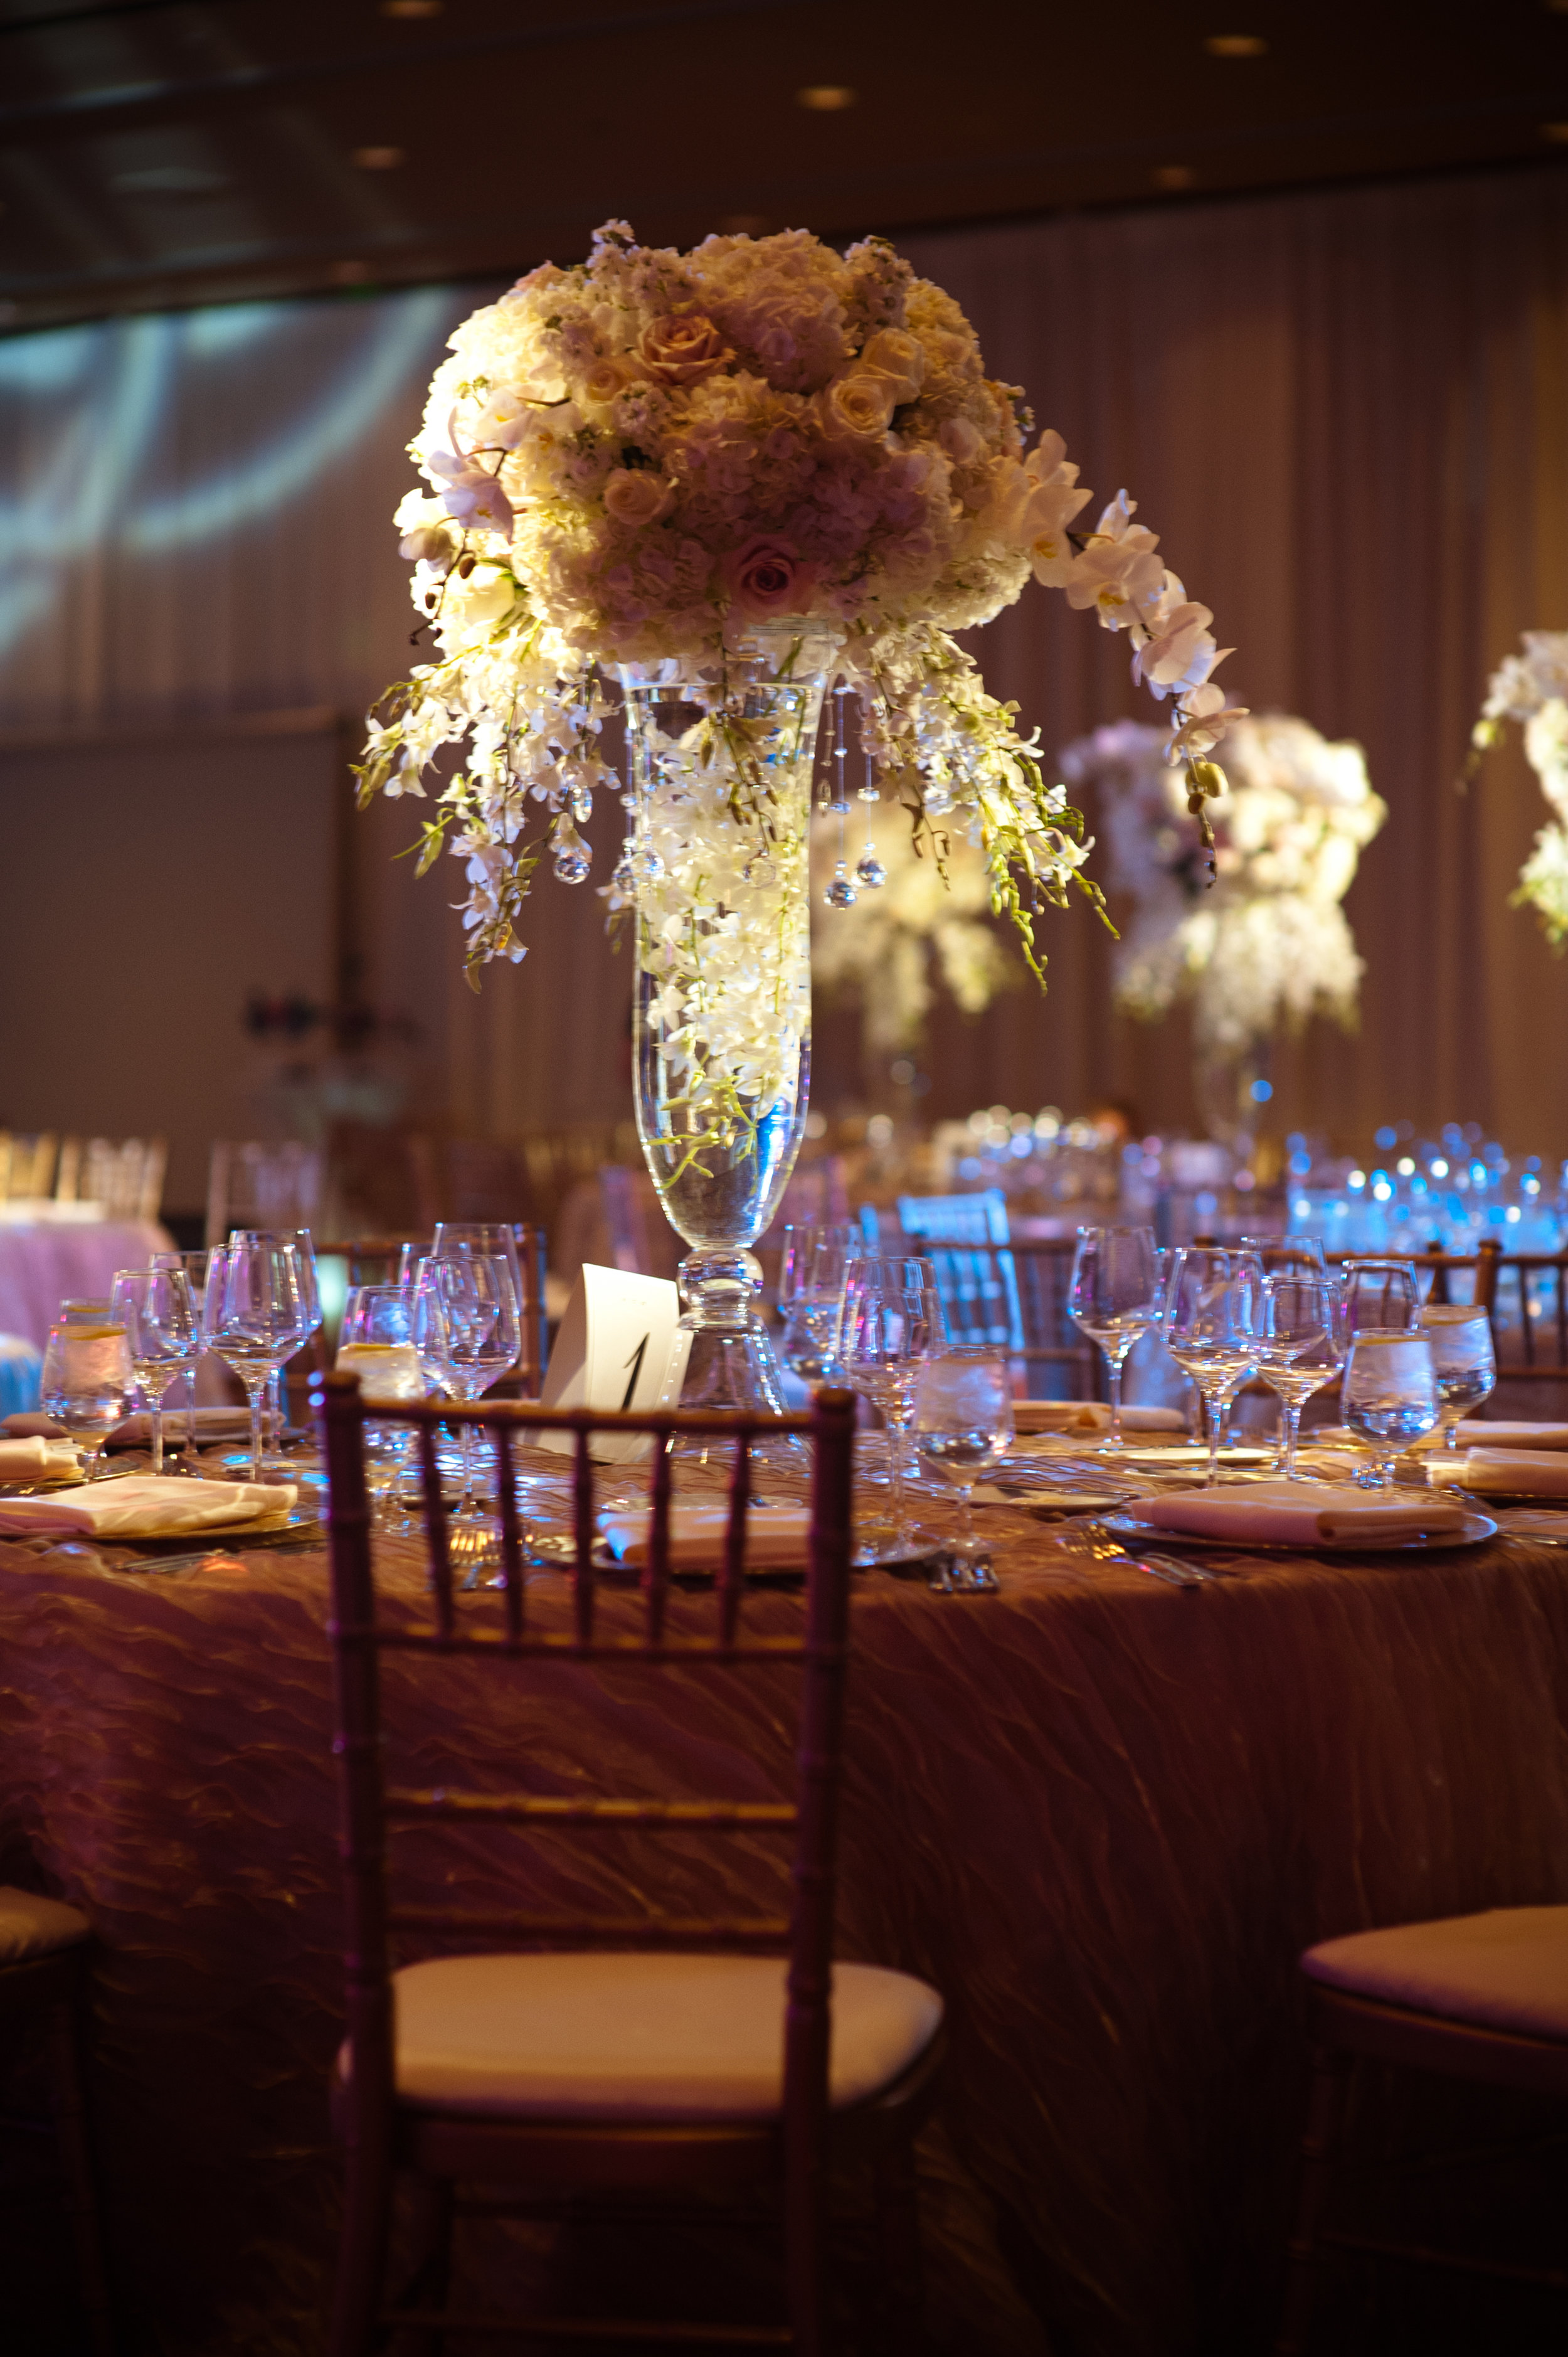 22 tall centerpieces purple and white centerpieces unique centerpieces elegant centerpieces fancy centerpieces Christine Johnson Photography Life Design Events .jpg